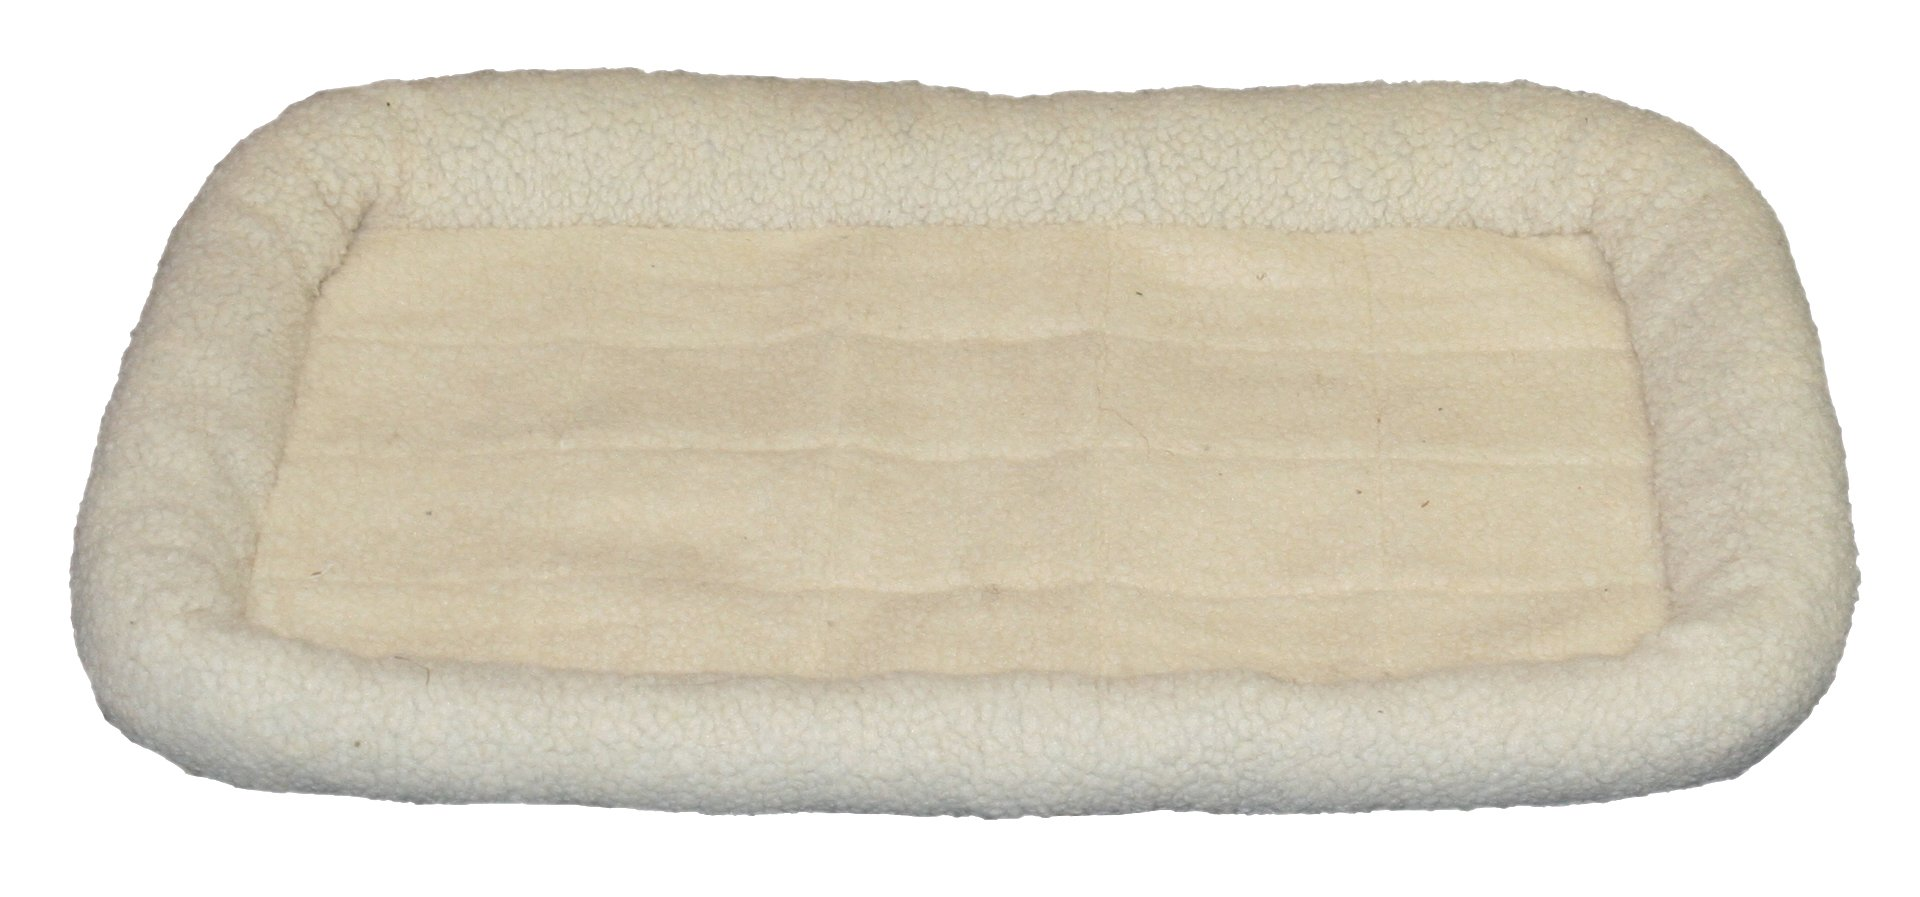 Danawares 29.5-Inch by 20.5-Inch Sherpa Rolled Edges Crate Liner, Medium